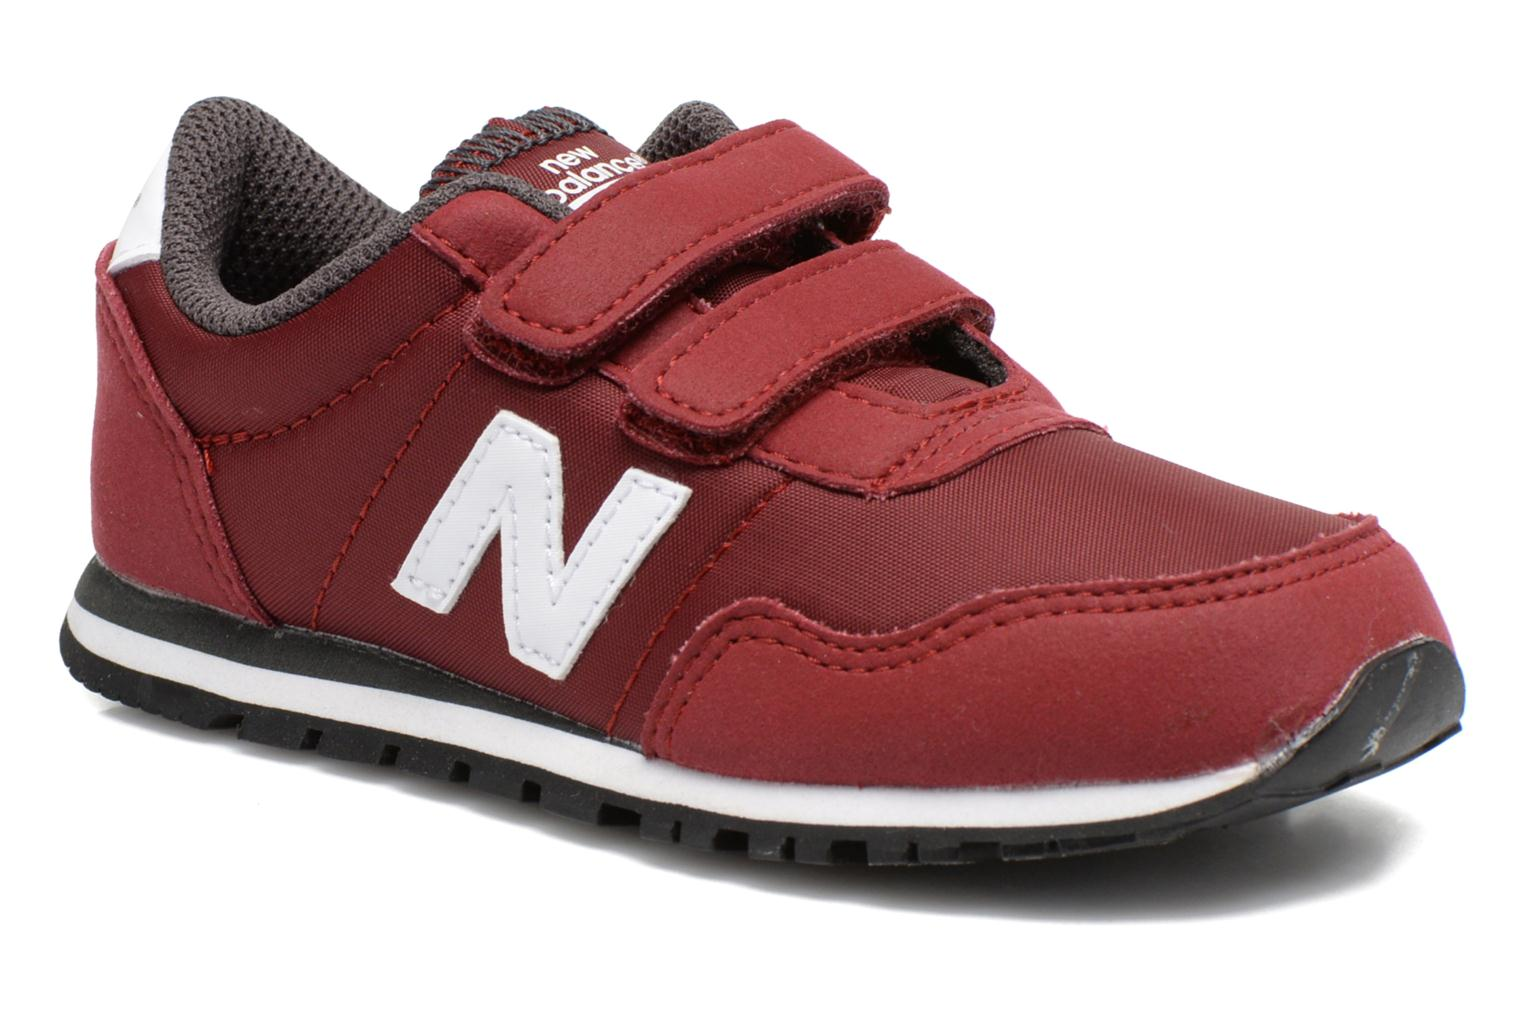 Sneakers KV396 by New Balance